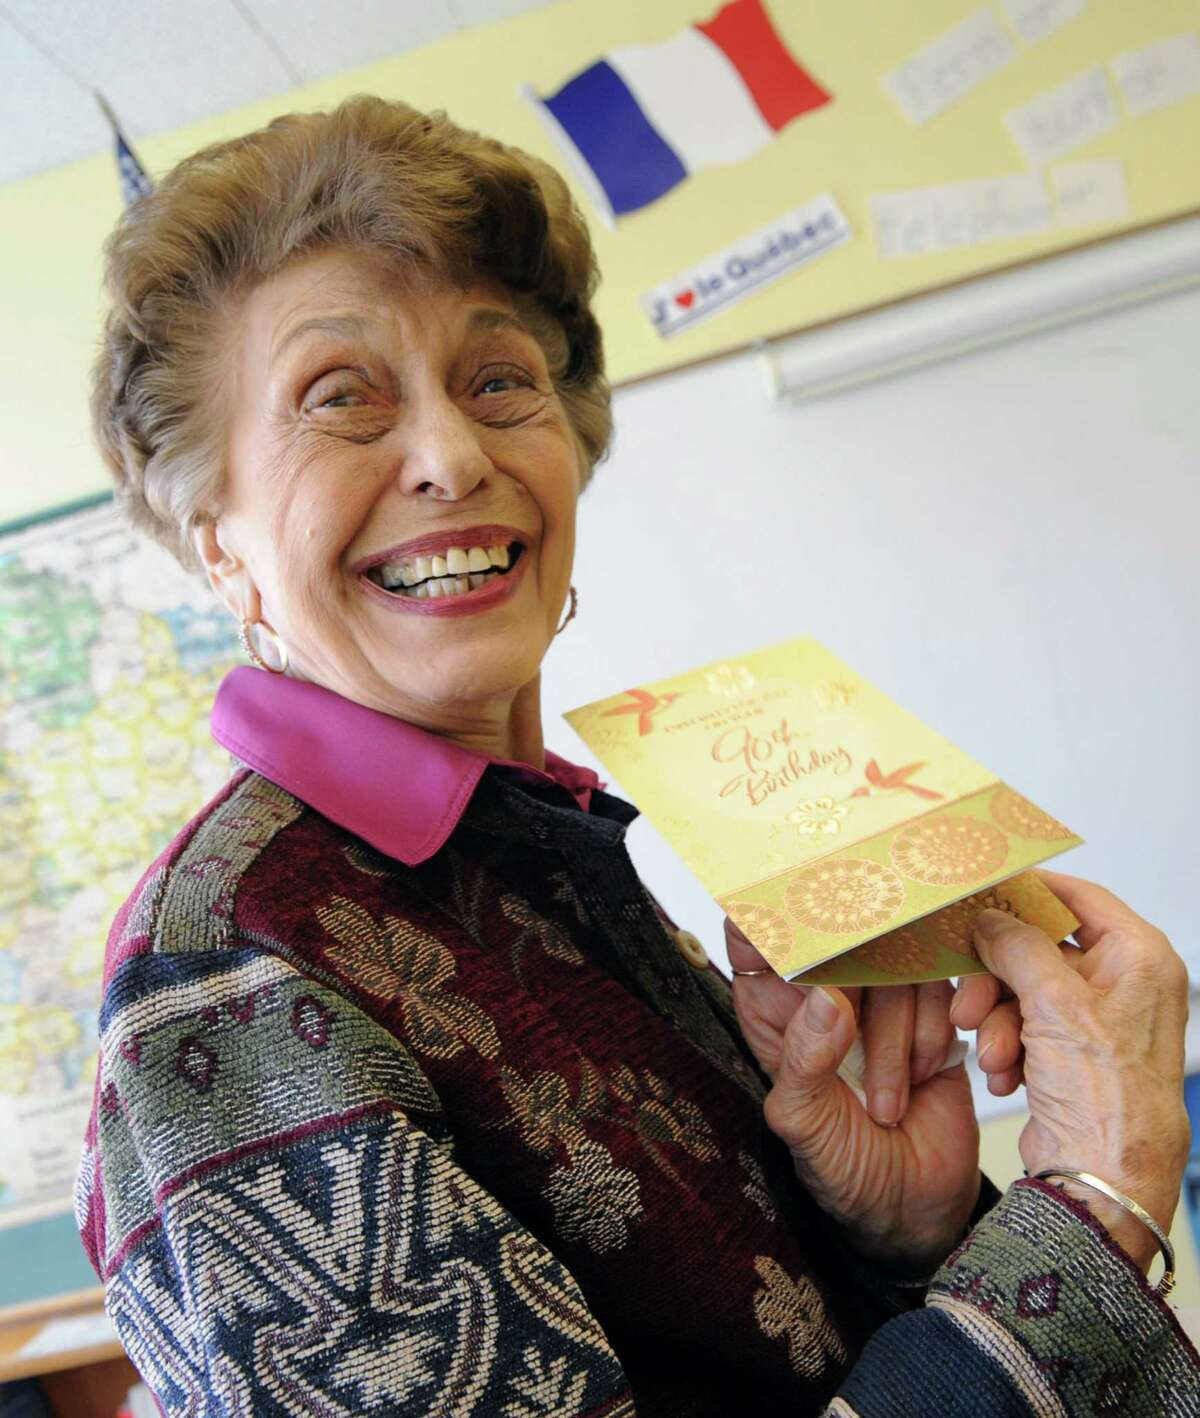 Ninety-year-old french teacher Germaine Graf kisses junior Regan Edwards smiles after opening up a birthday card from her advanced french class at Academy of the Holy Names school on Tuesday, April 9, 2013 in Albany, N.Y. Graf has announced she'll retire at the end of this year. (Lori Van Buren / Times Union)